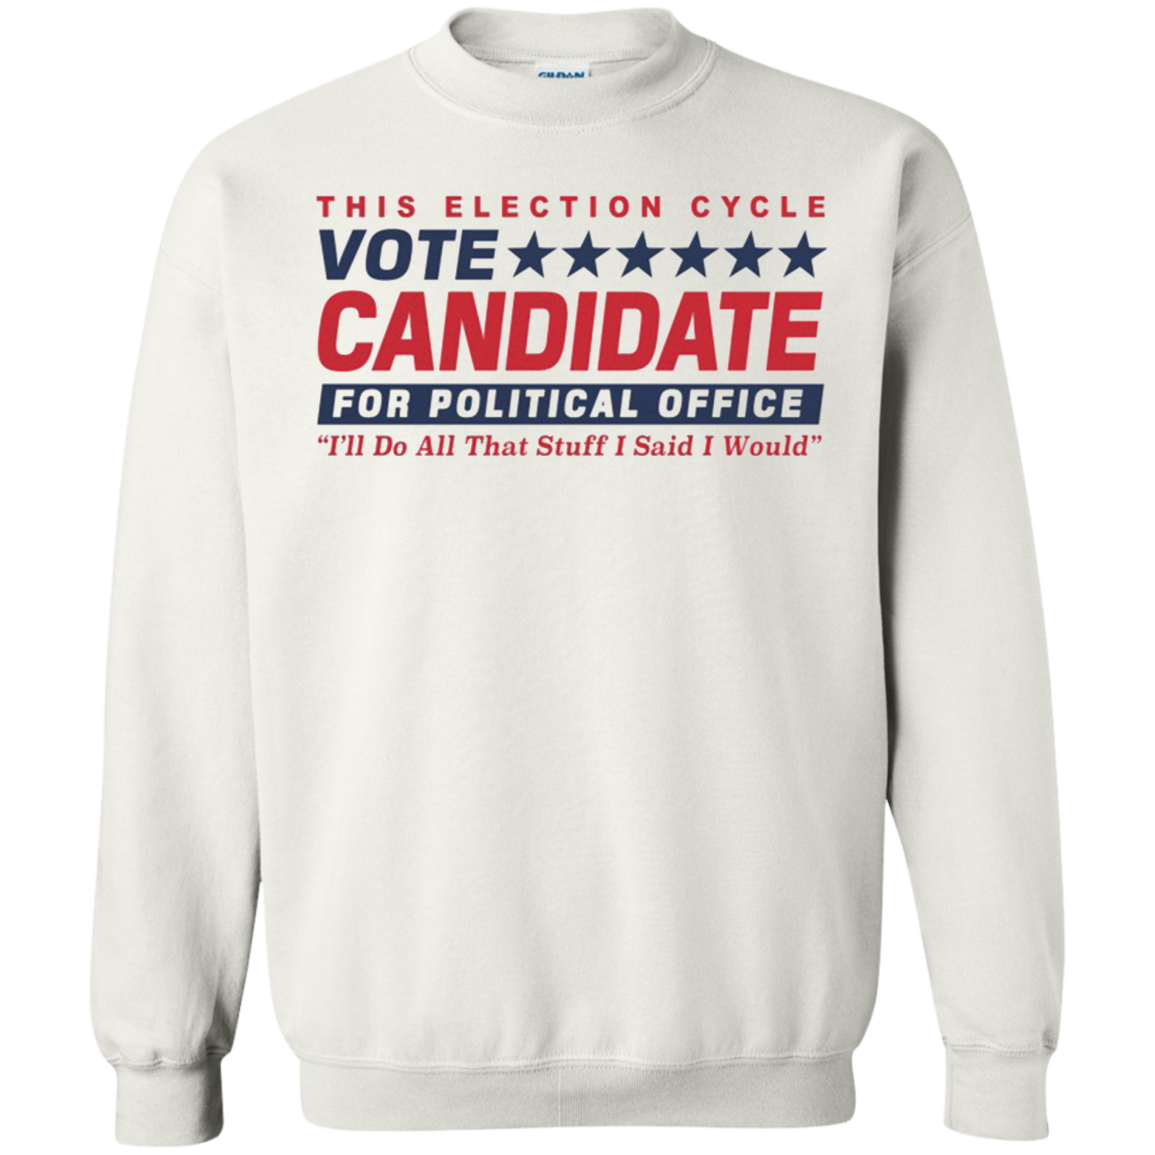 Can You Wear A Candidate Sweater To Vote